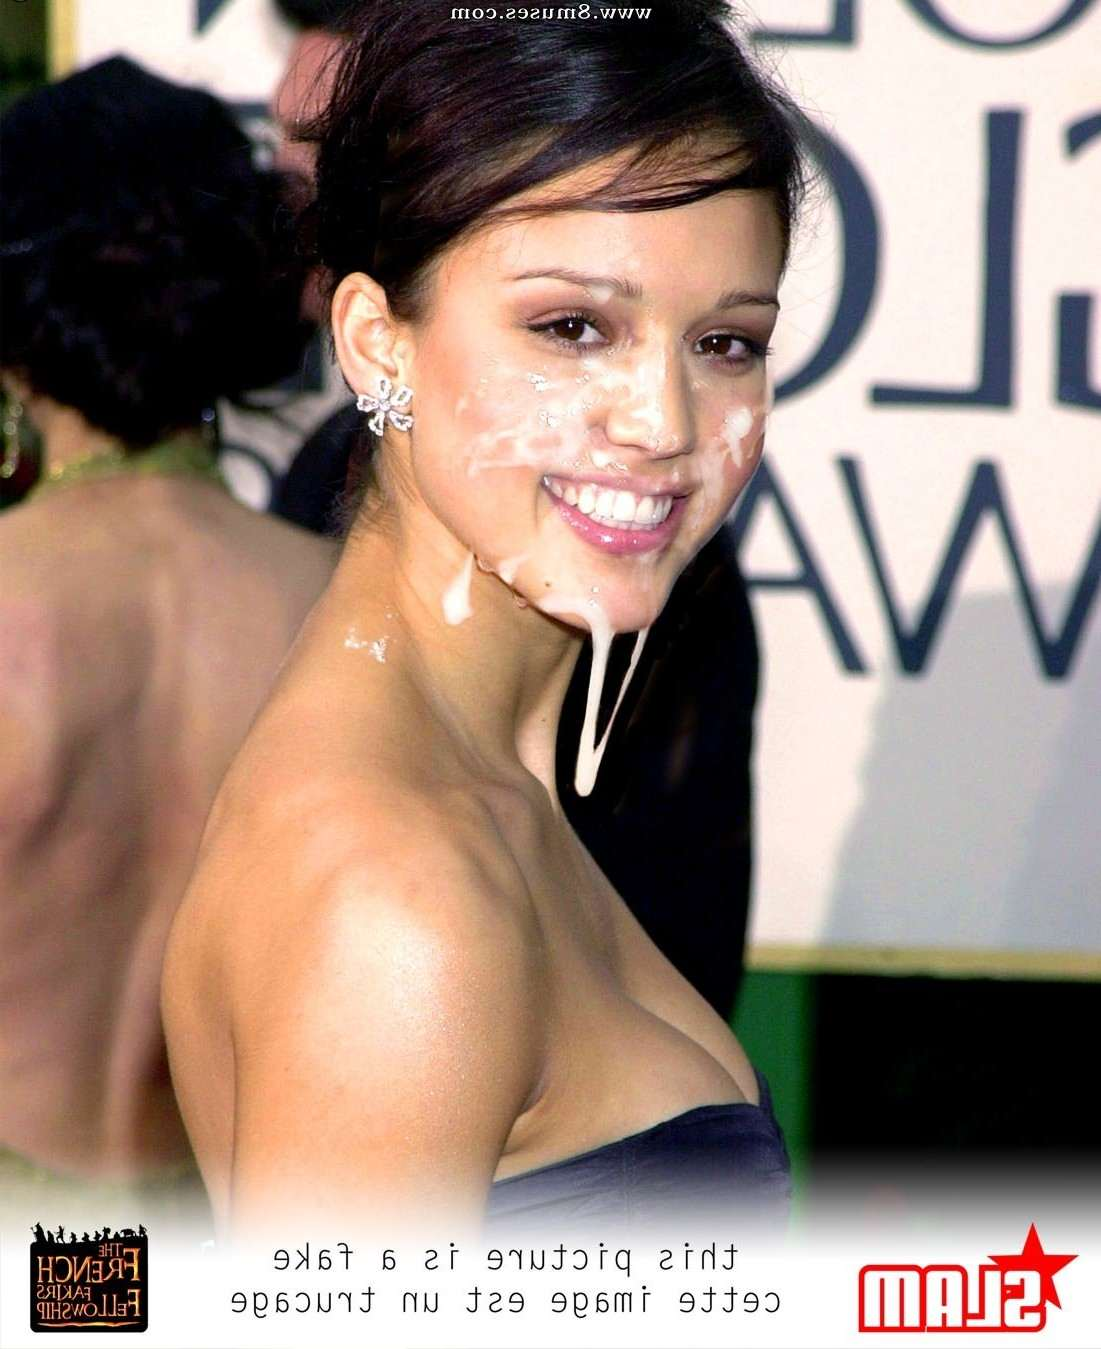 Fake-Celebrities-Sex-Pictures/Jessica-Alba Jessica_Alba__8muses_-_Sex_and_Porn_Comics_433.jpg